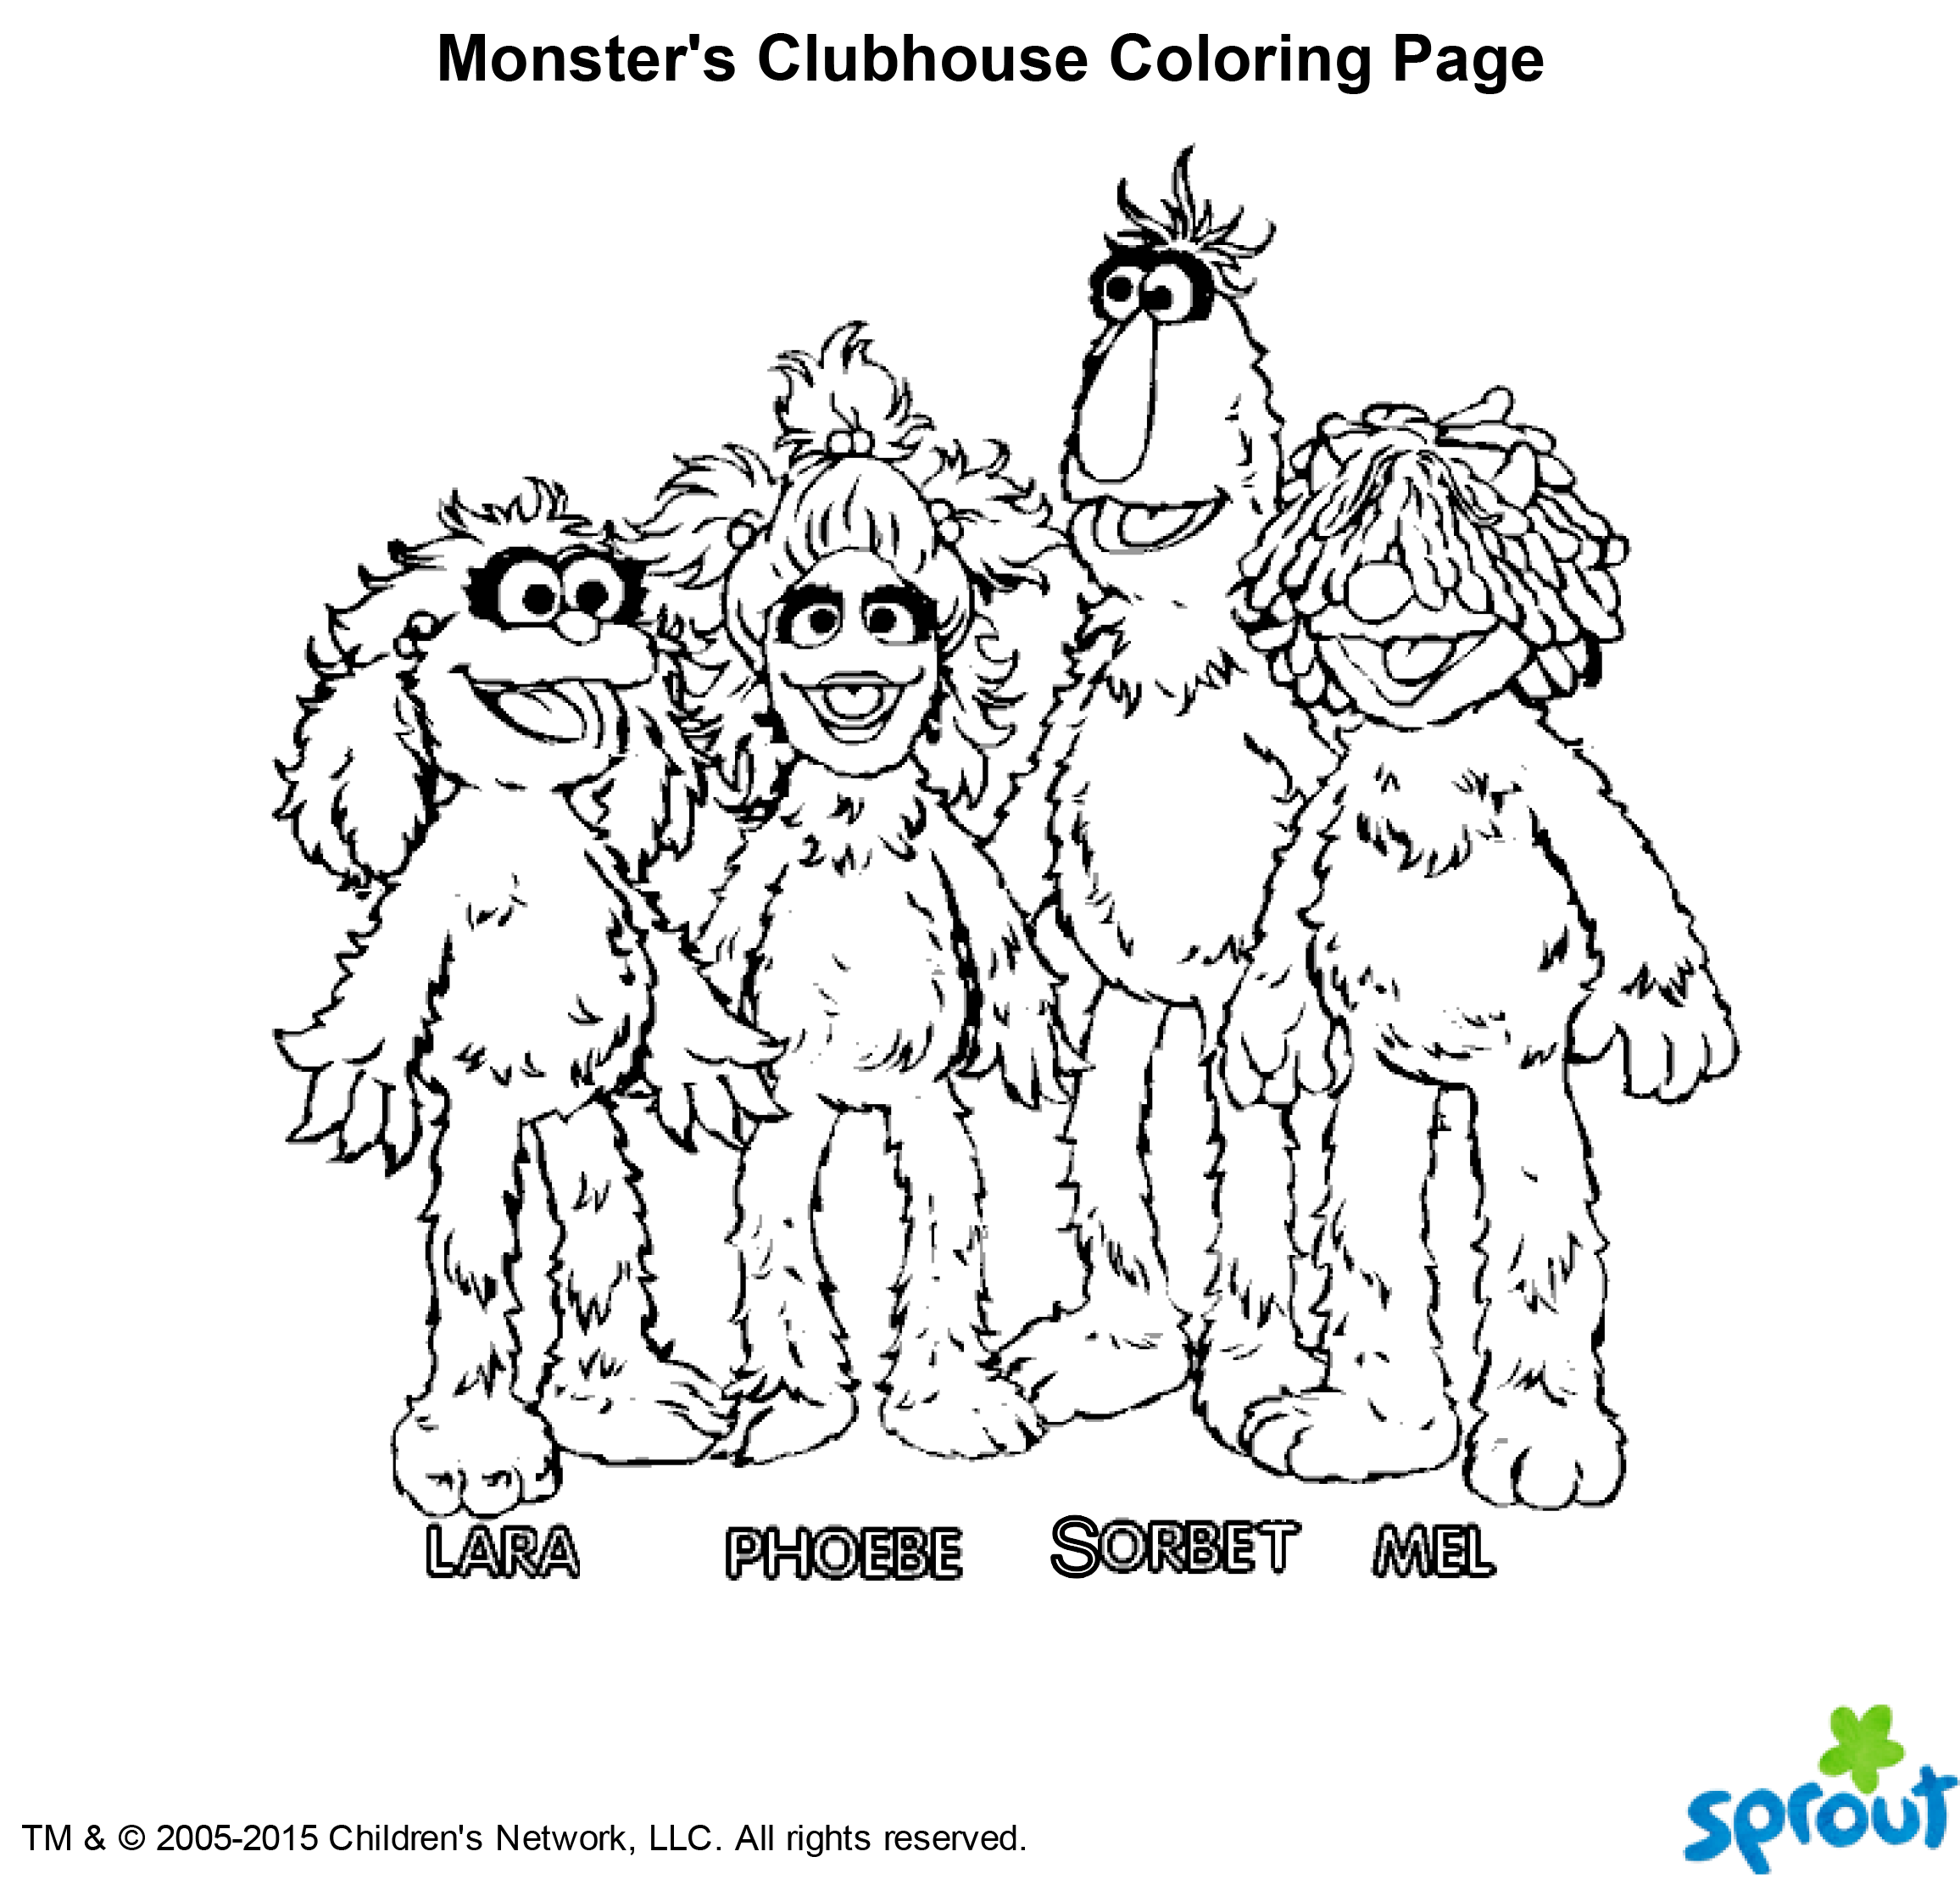 Monsters Clubhouse Coloring Page